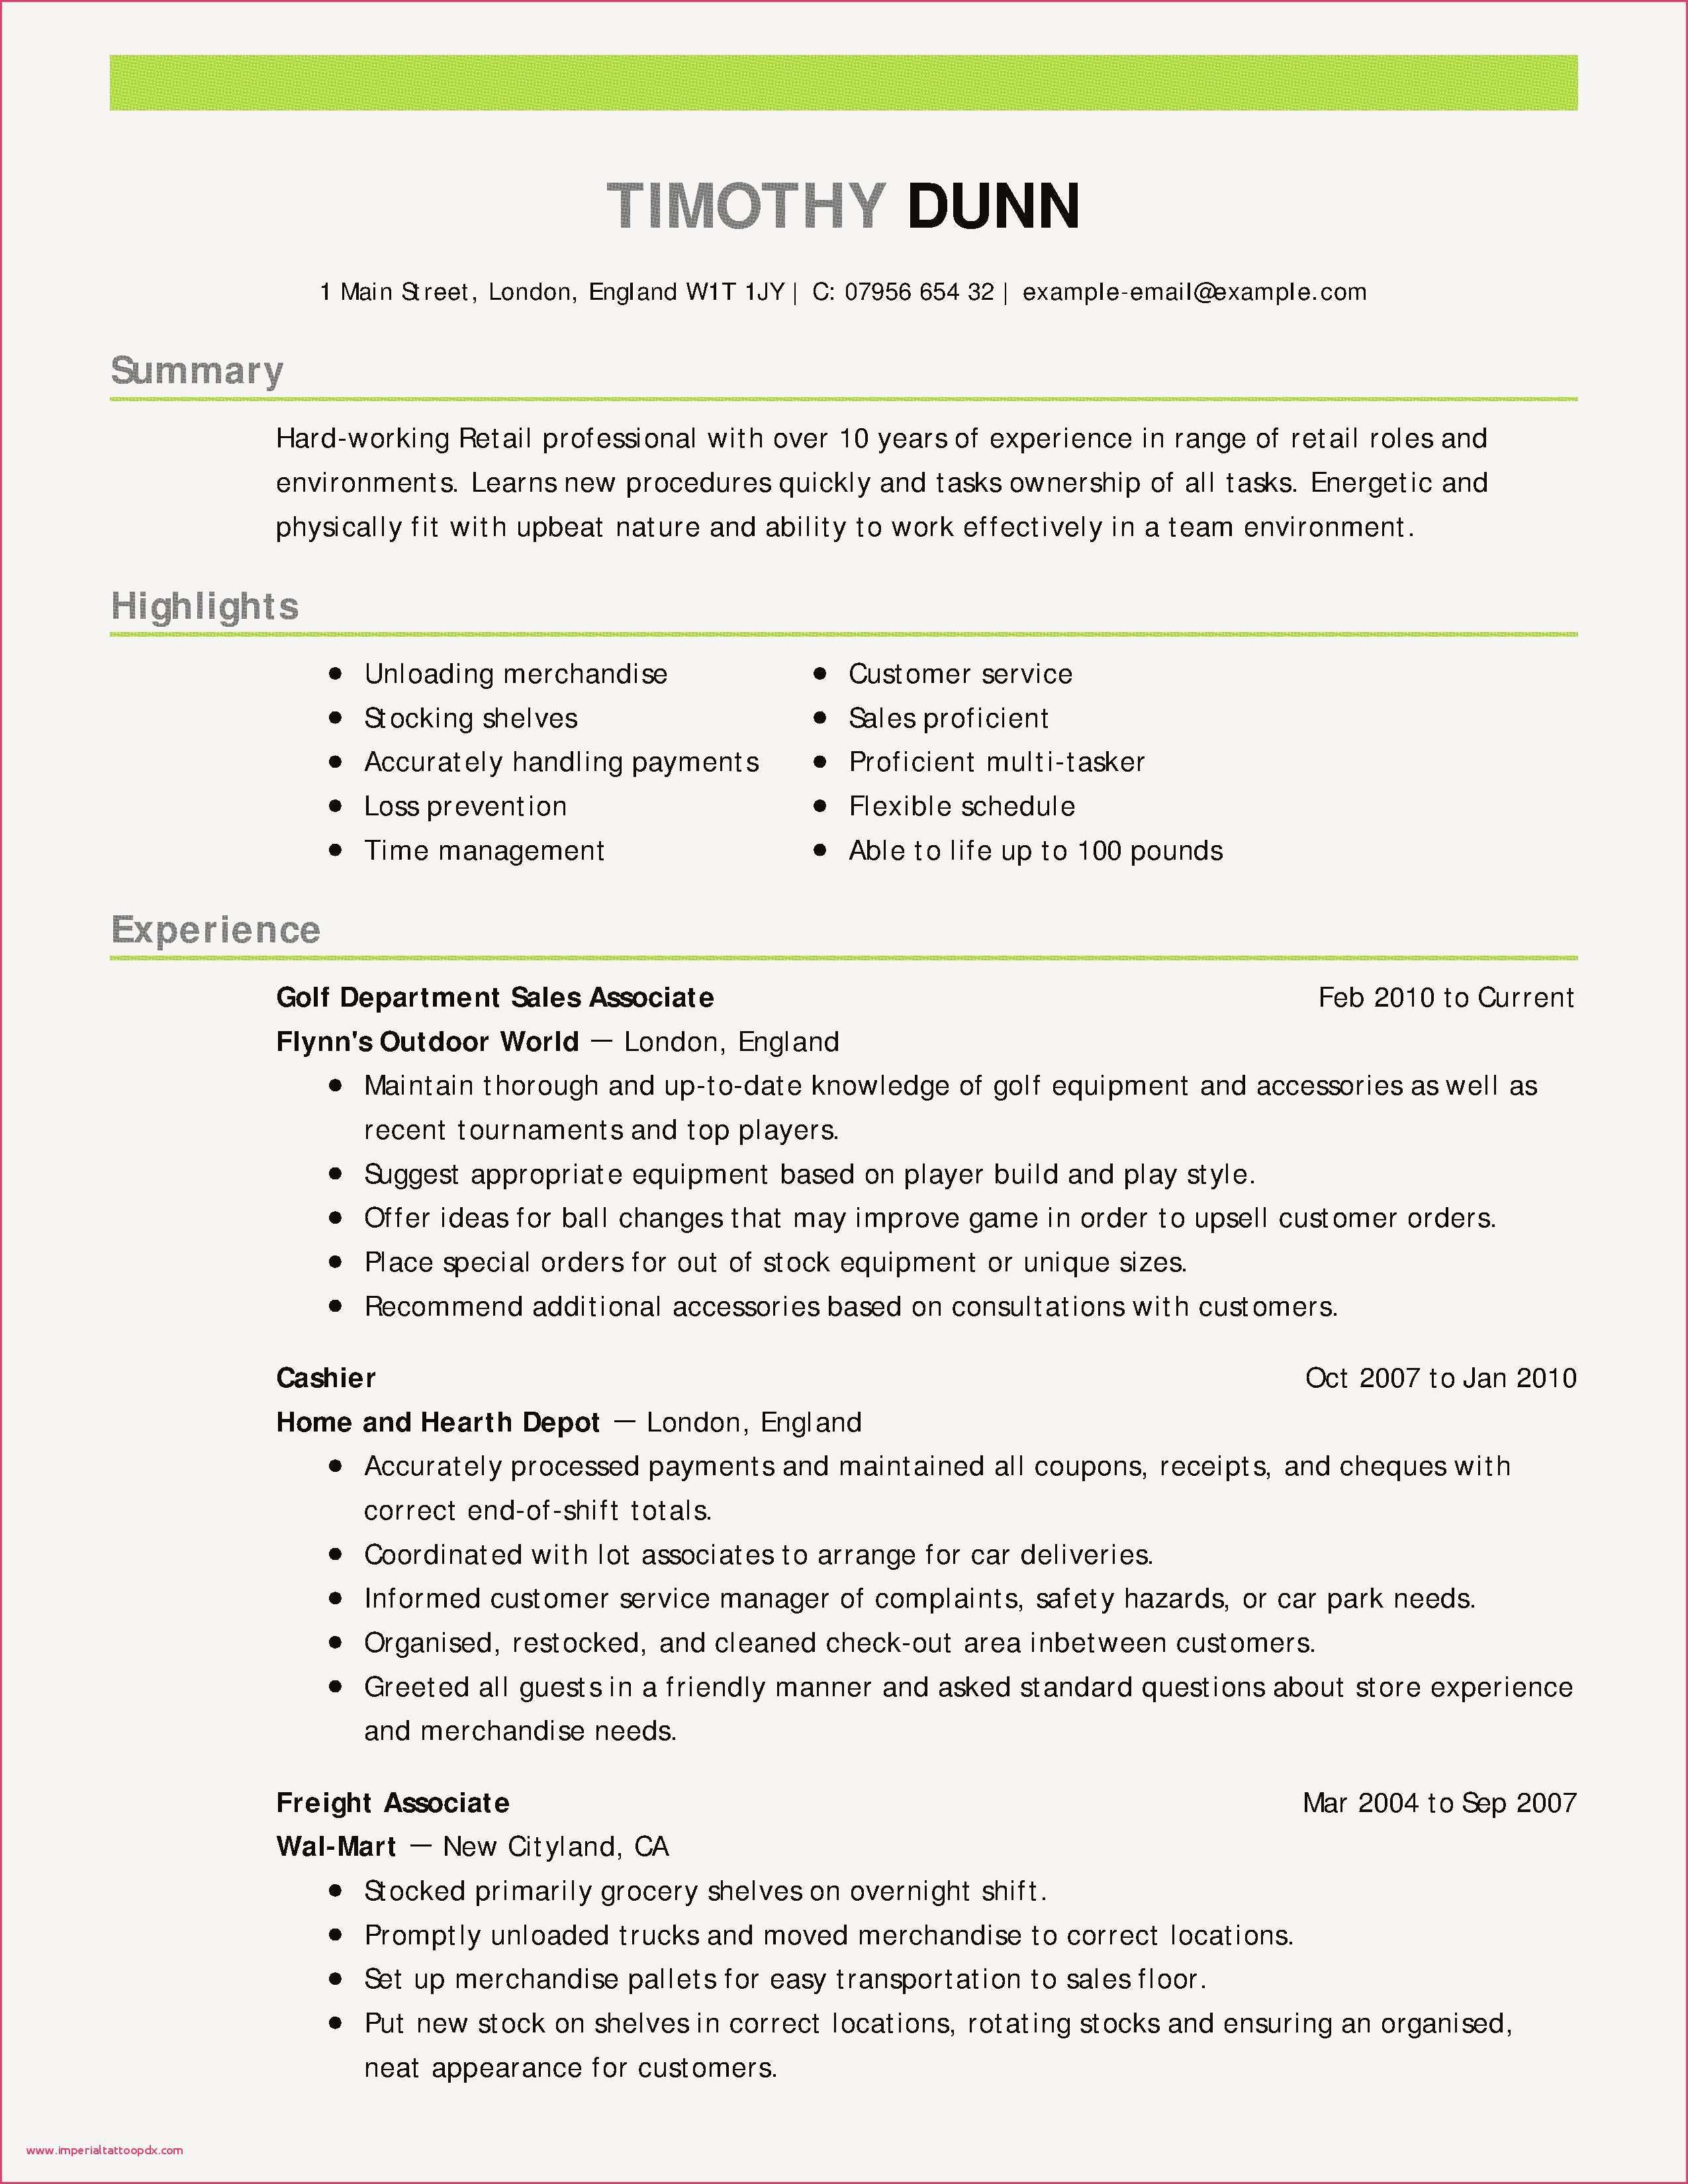 Hospitality Resume Template - 59 Resume Sample Hotel and Restaurant Management